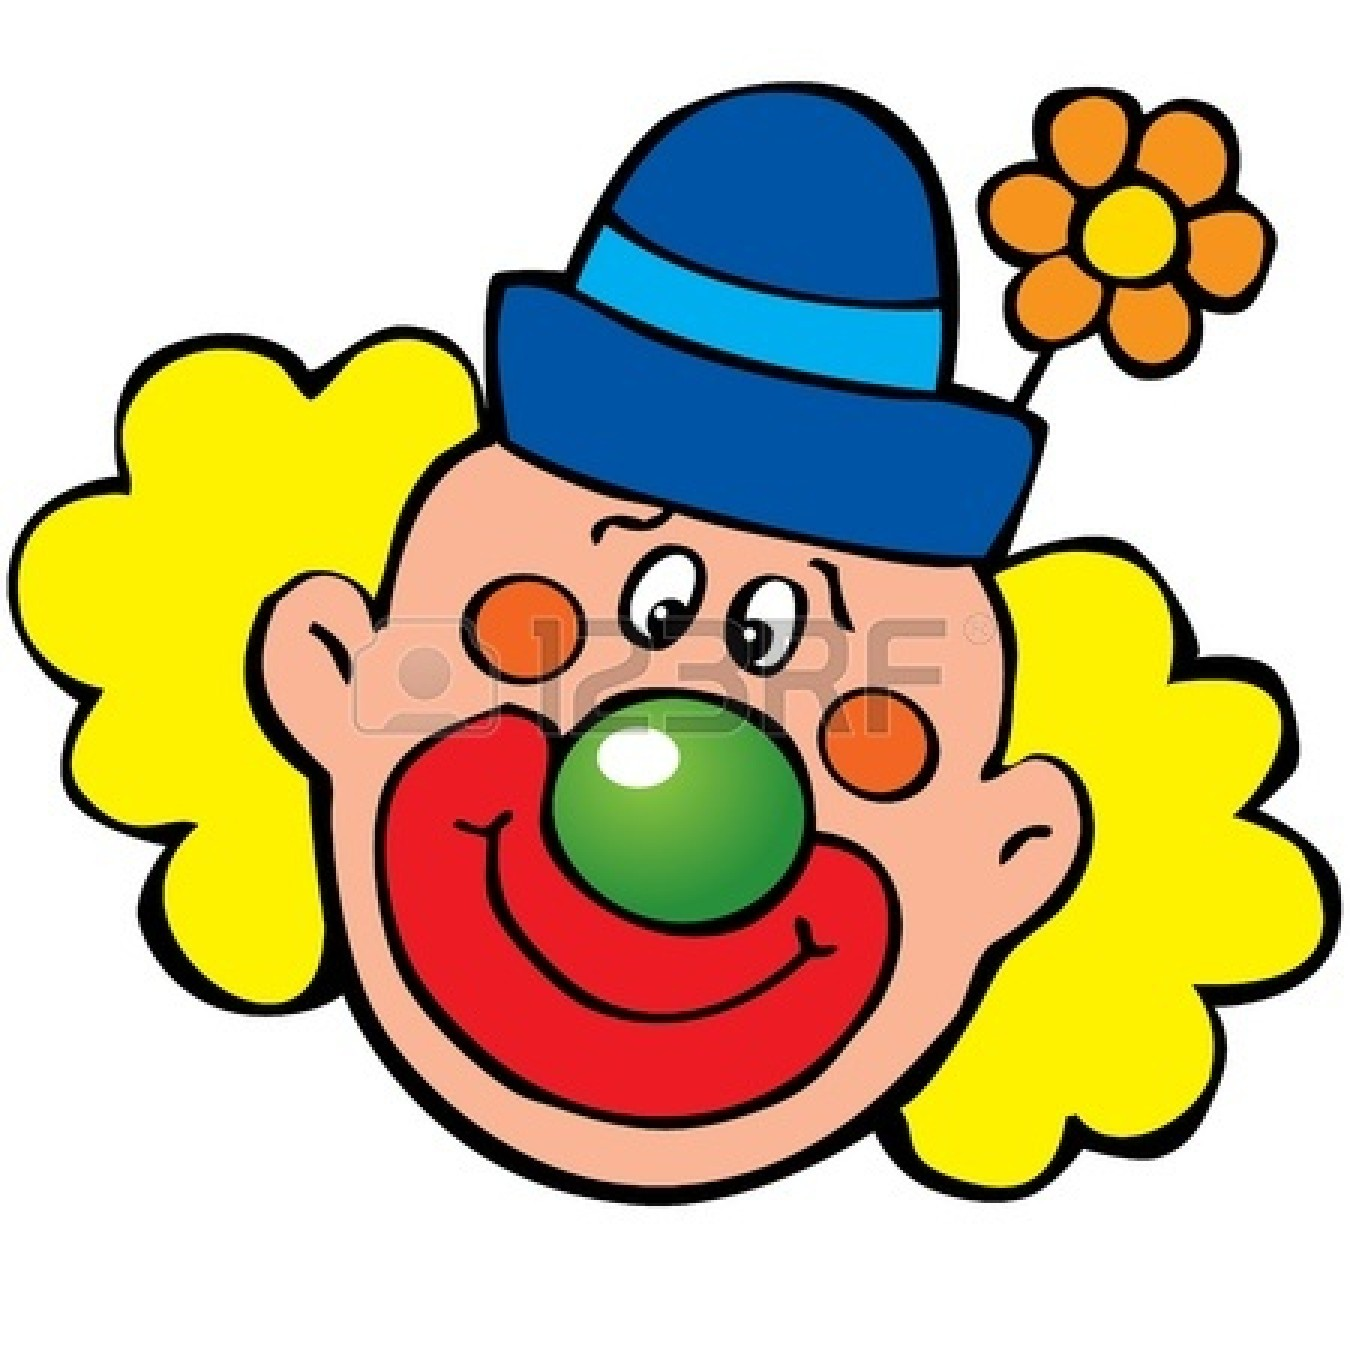 1350x1350 Clown Face Clip Art Clown Clip Art 15067566 Happy Clown Art